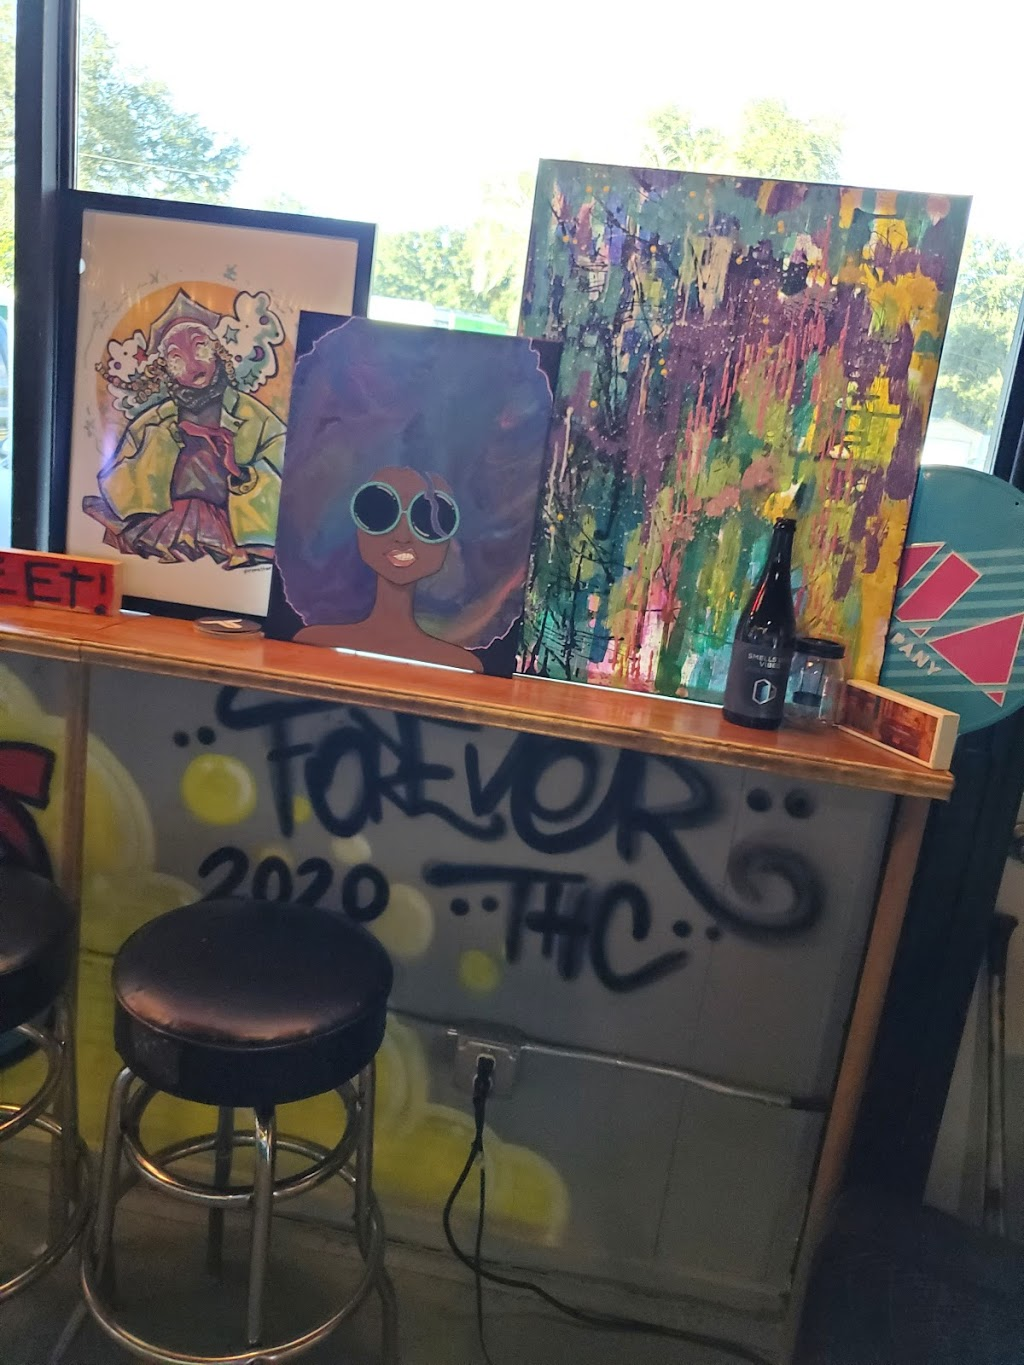 The Commission Beer Chamber - bar    Photo 10 of 10   Address: 2230 Curry Ford Rd, Orlando, FL 32806, USA   Phone: (407) 271-4028